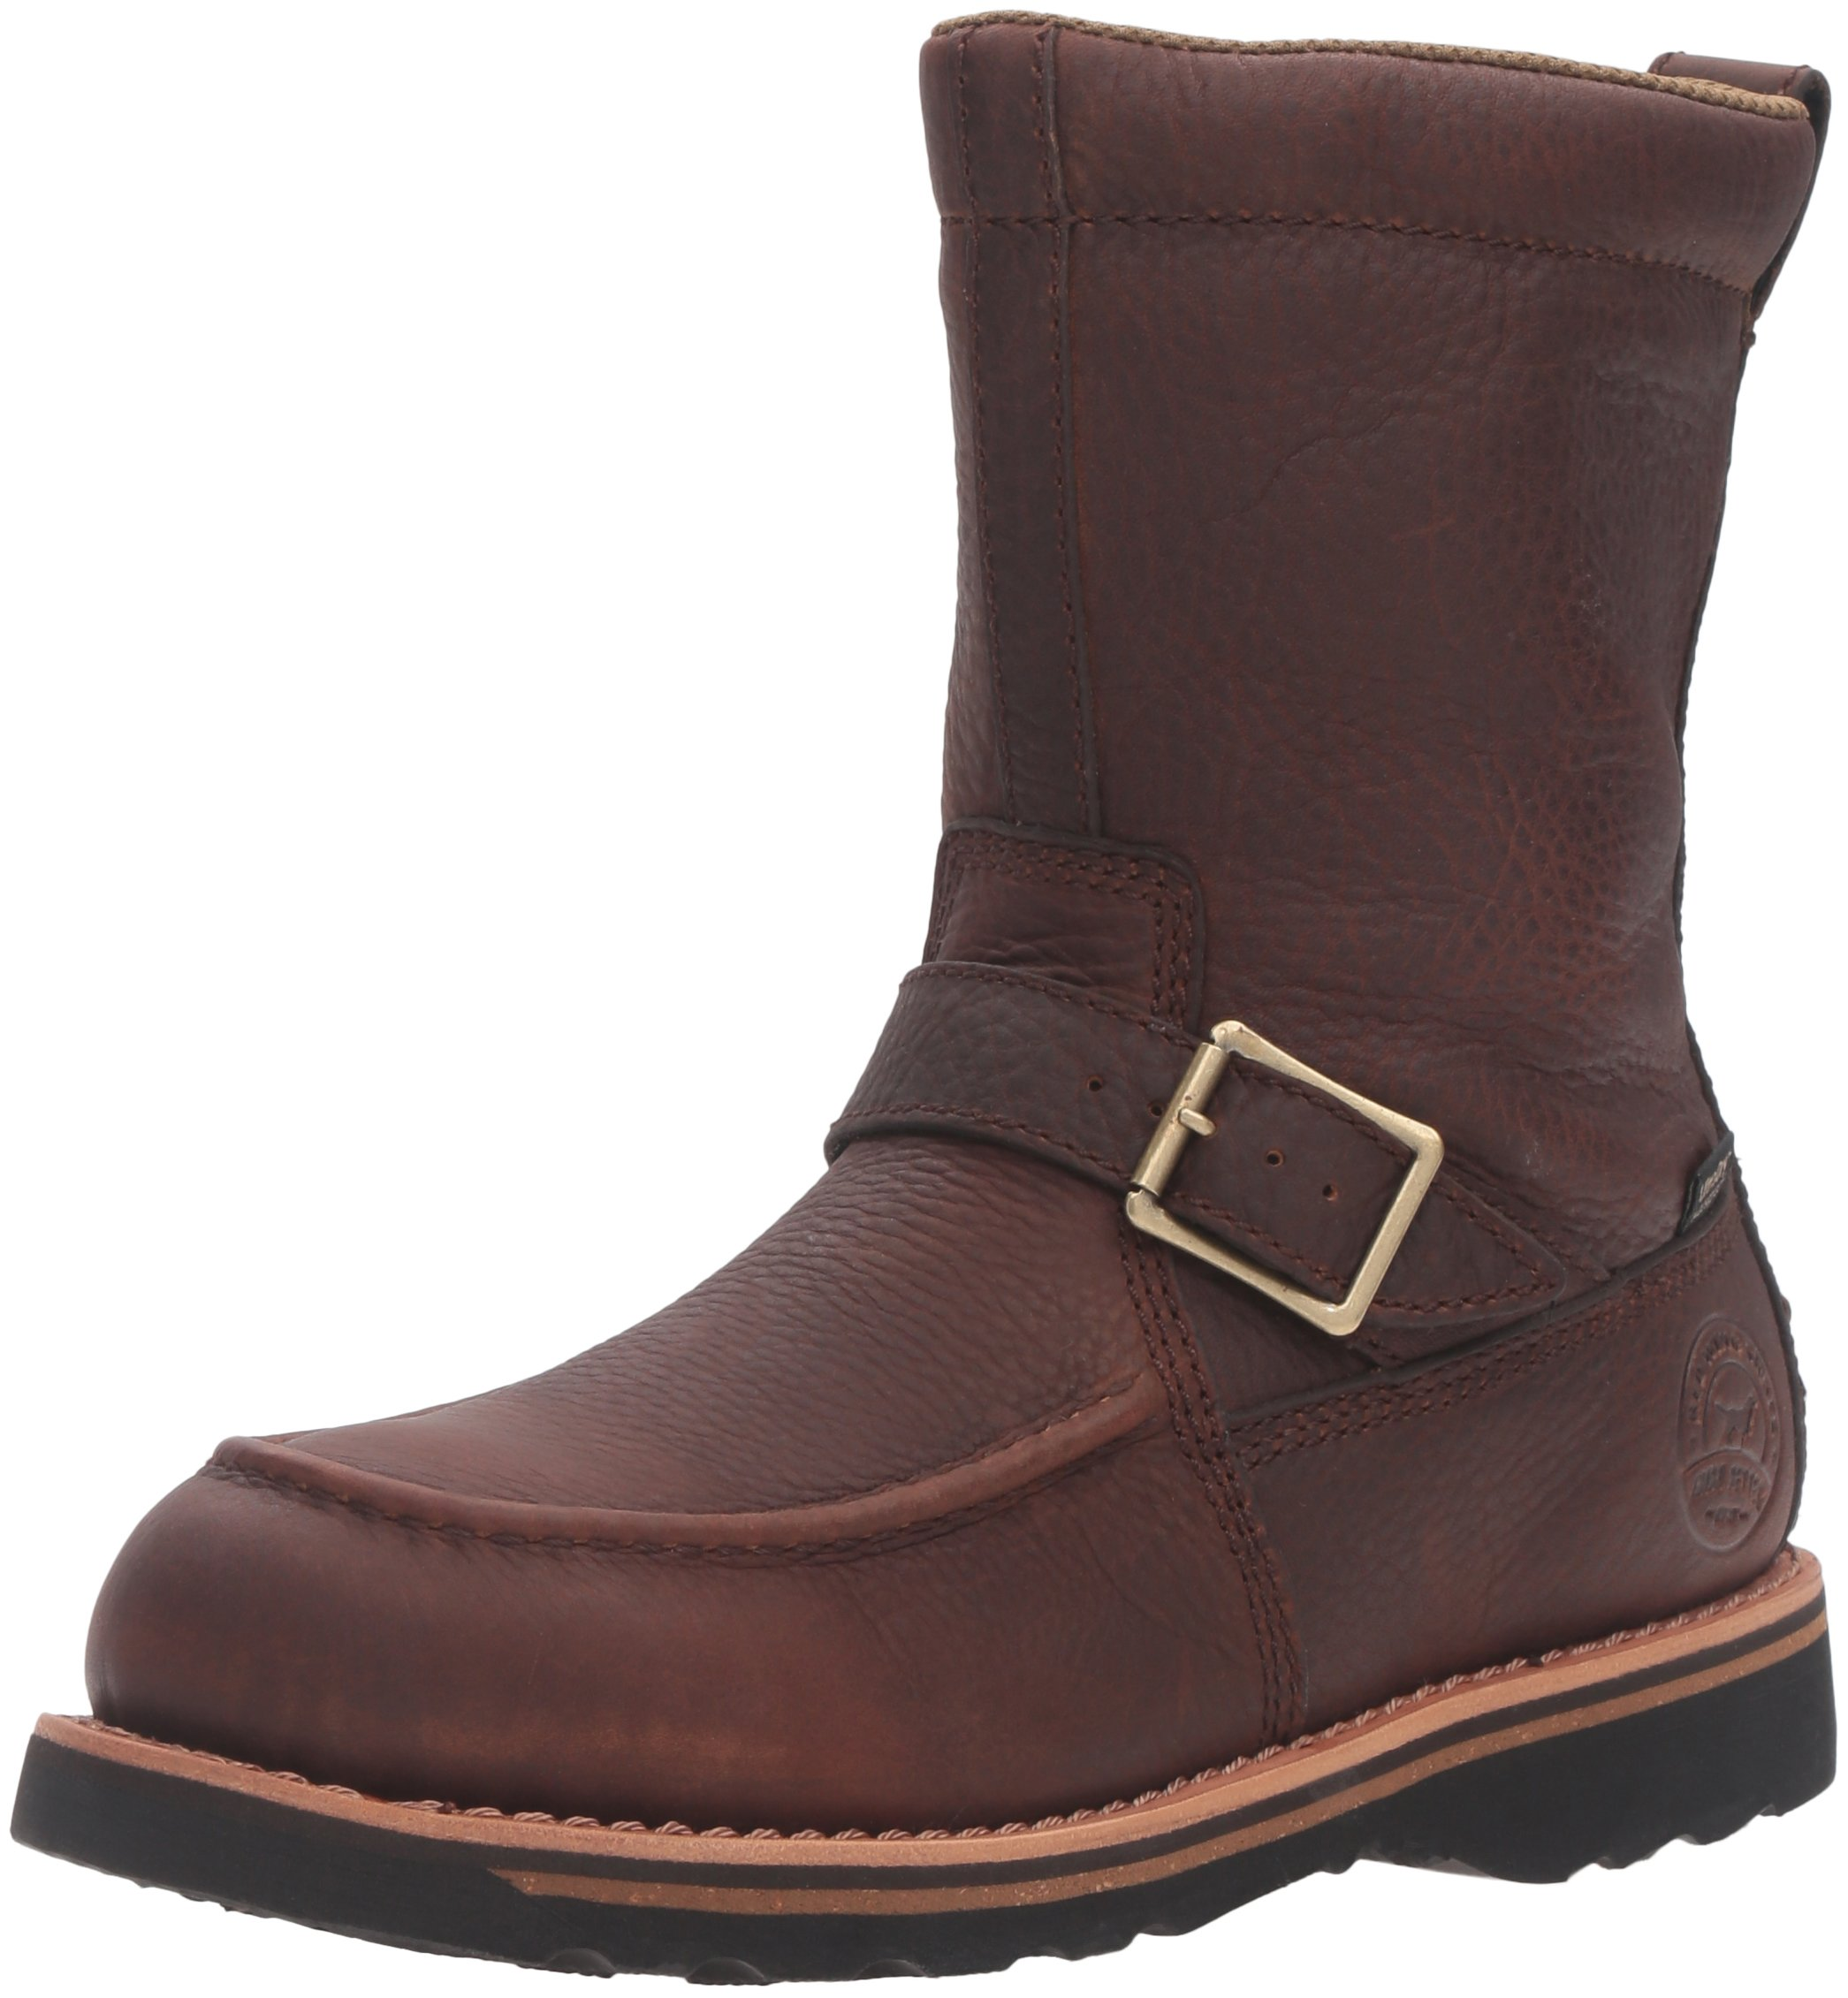 Irish Setter Men's Wingshooter Side Zip 839 Hunting Boot, Brown, 10 2E US by Irish Setter